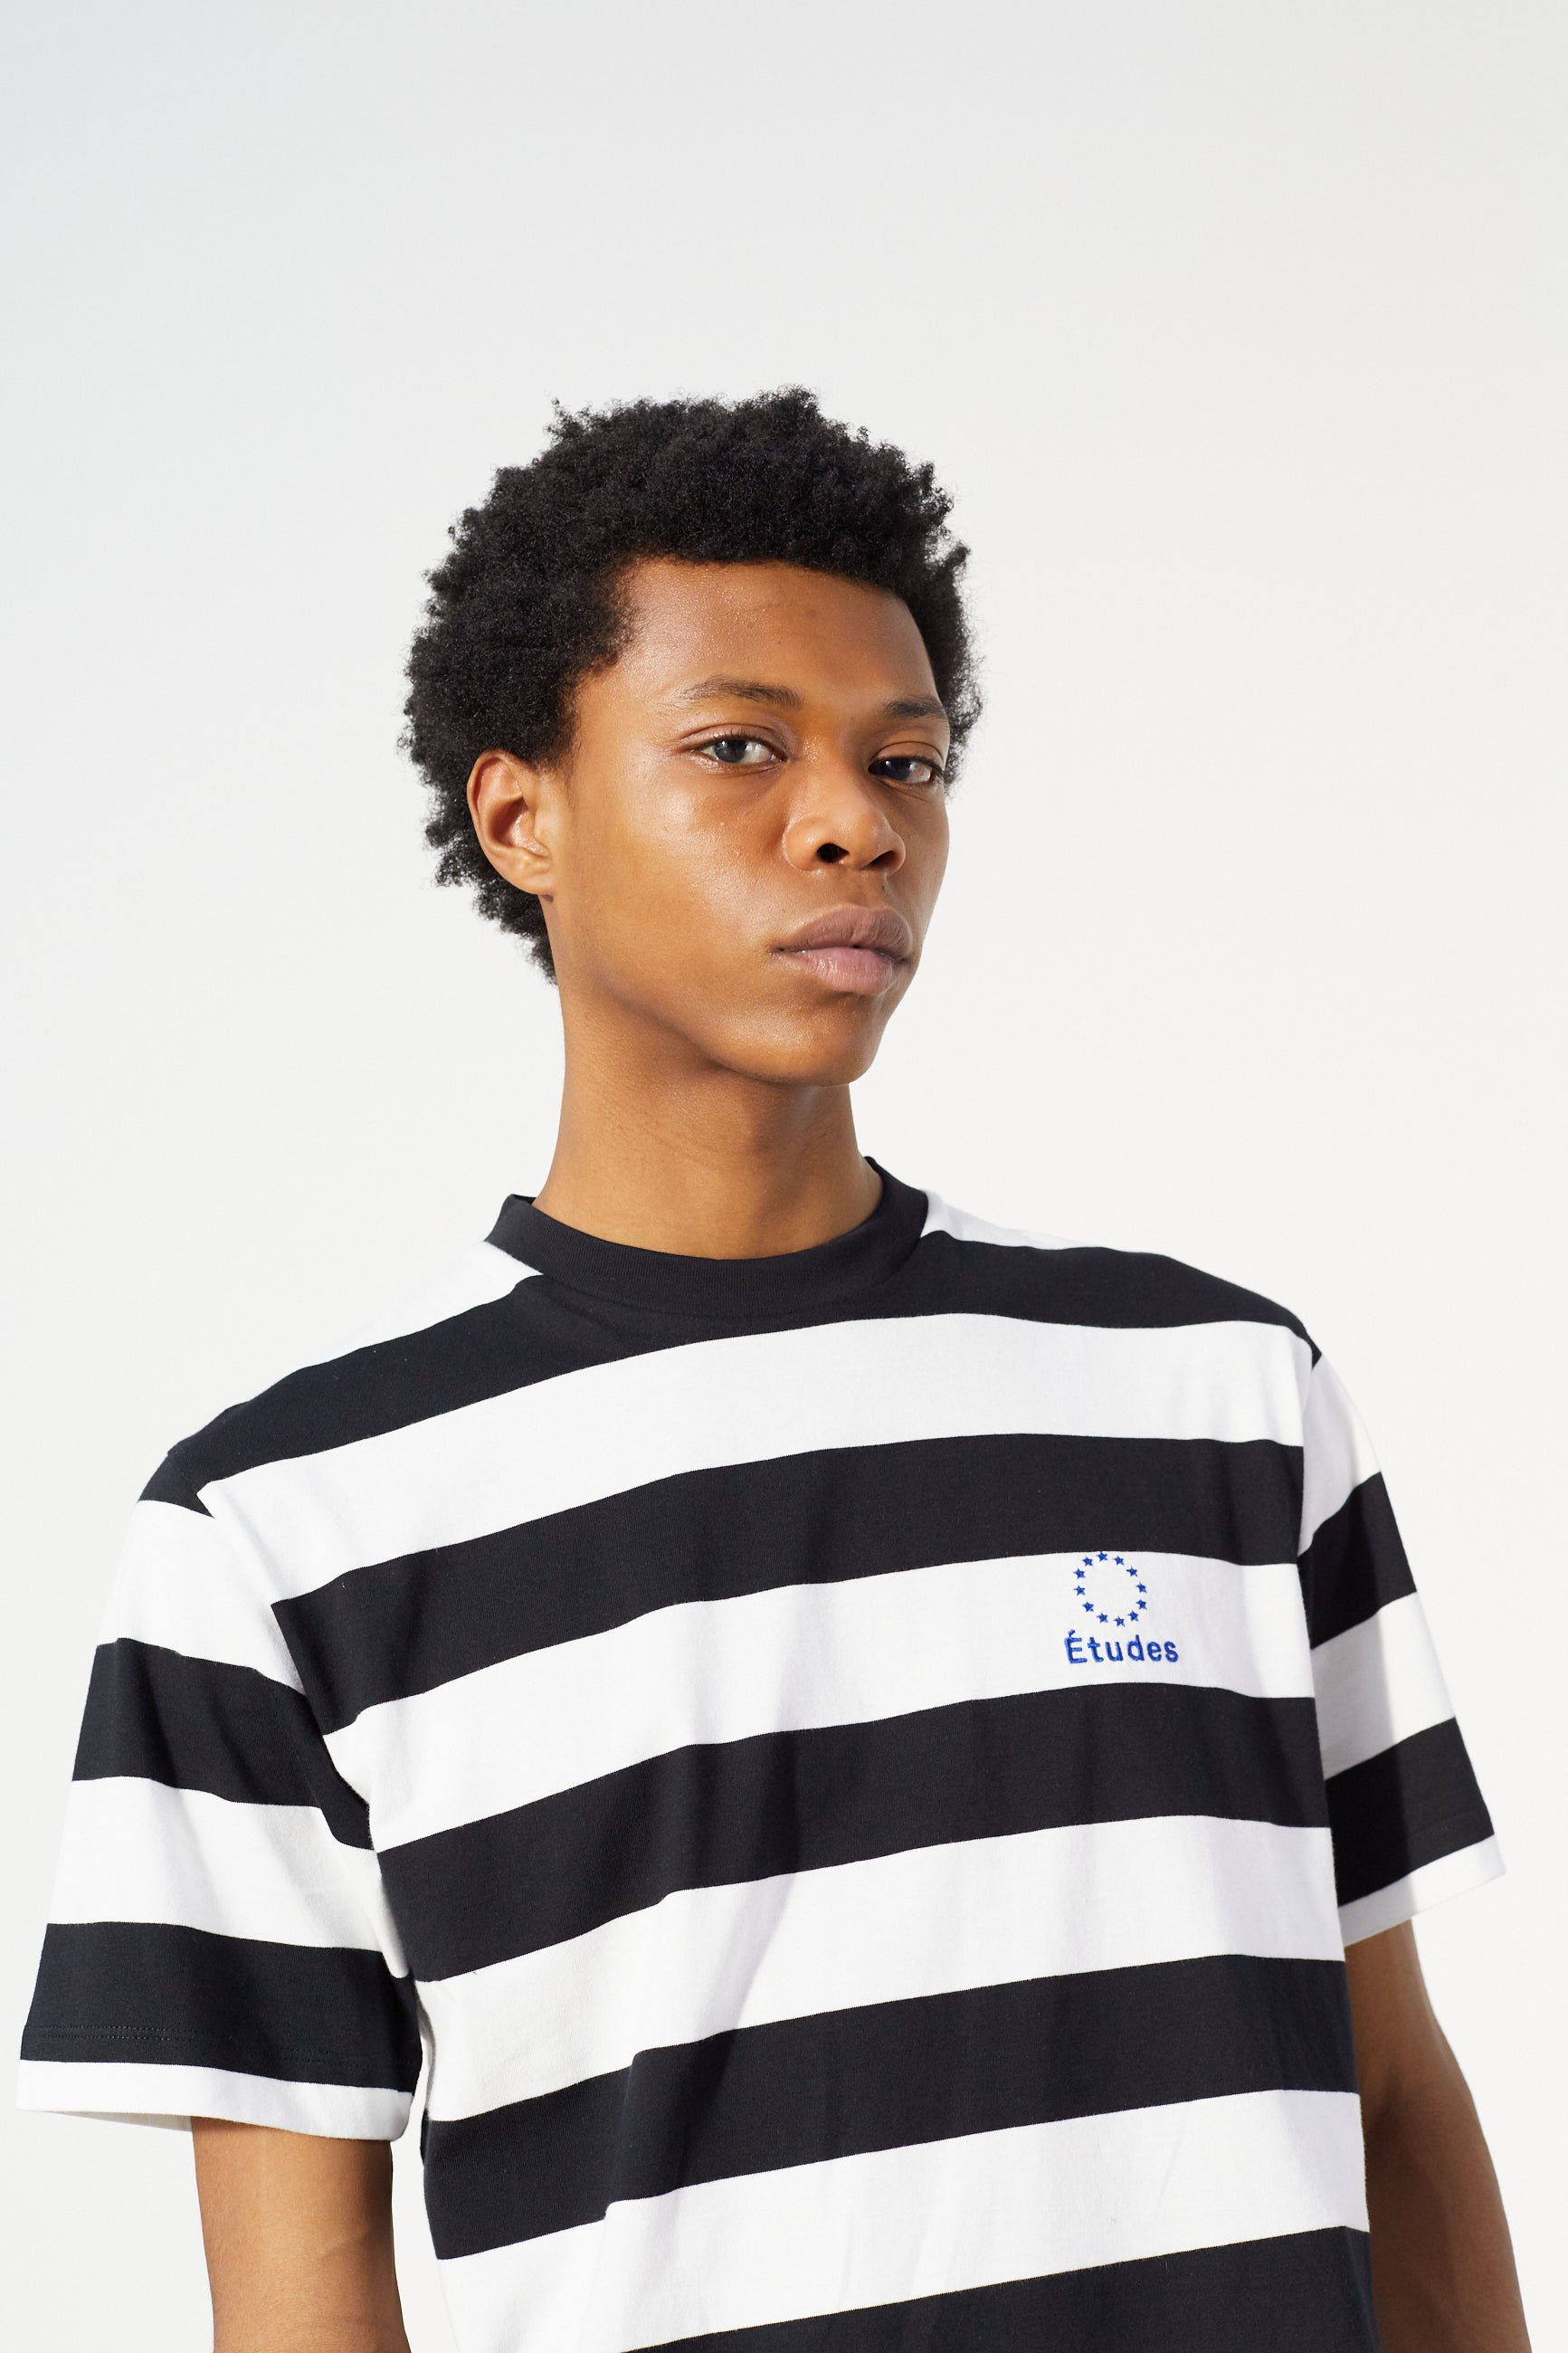 Études Wonder Logo Striped B&W T-shirt 3